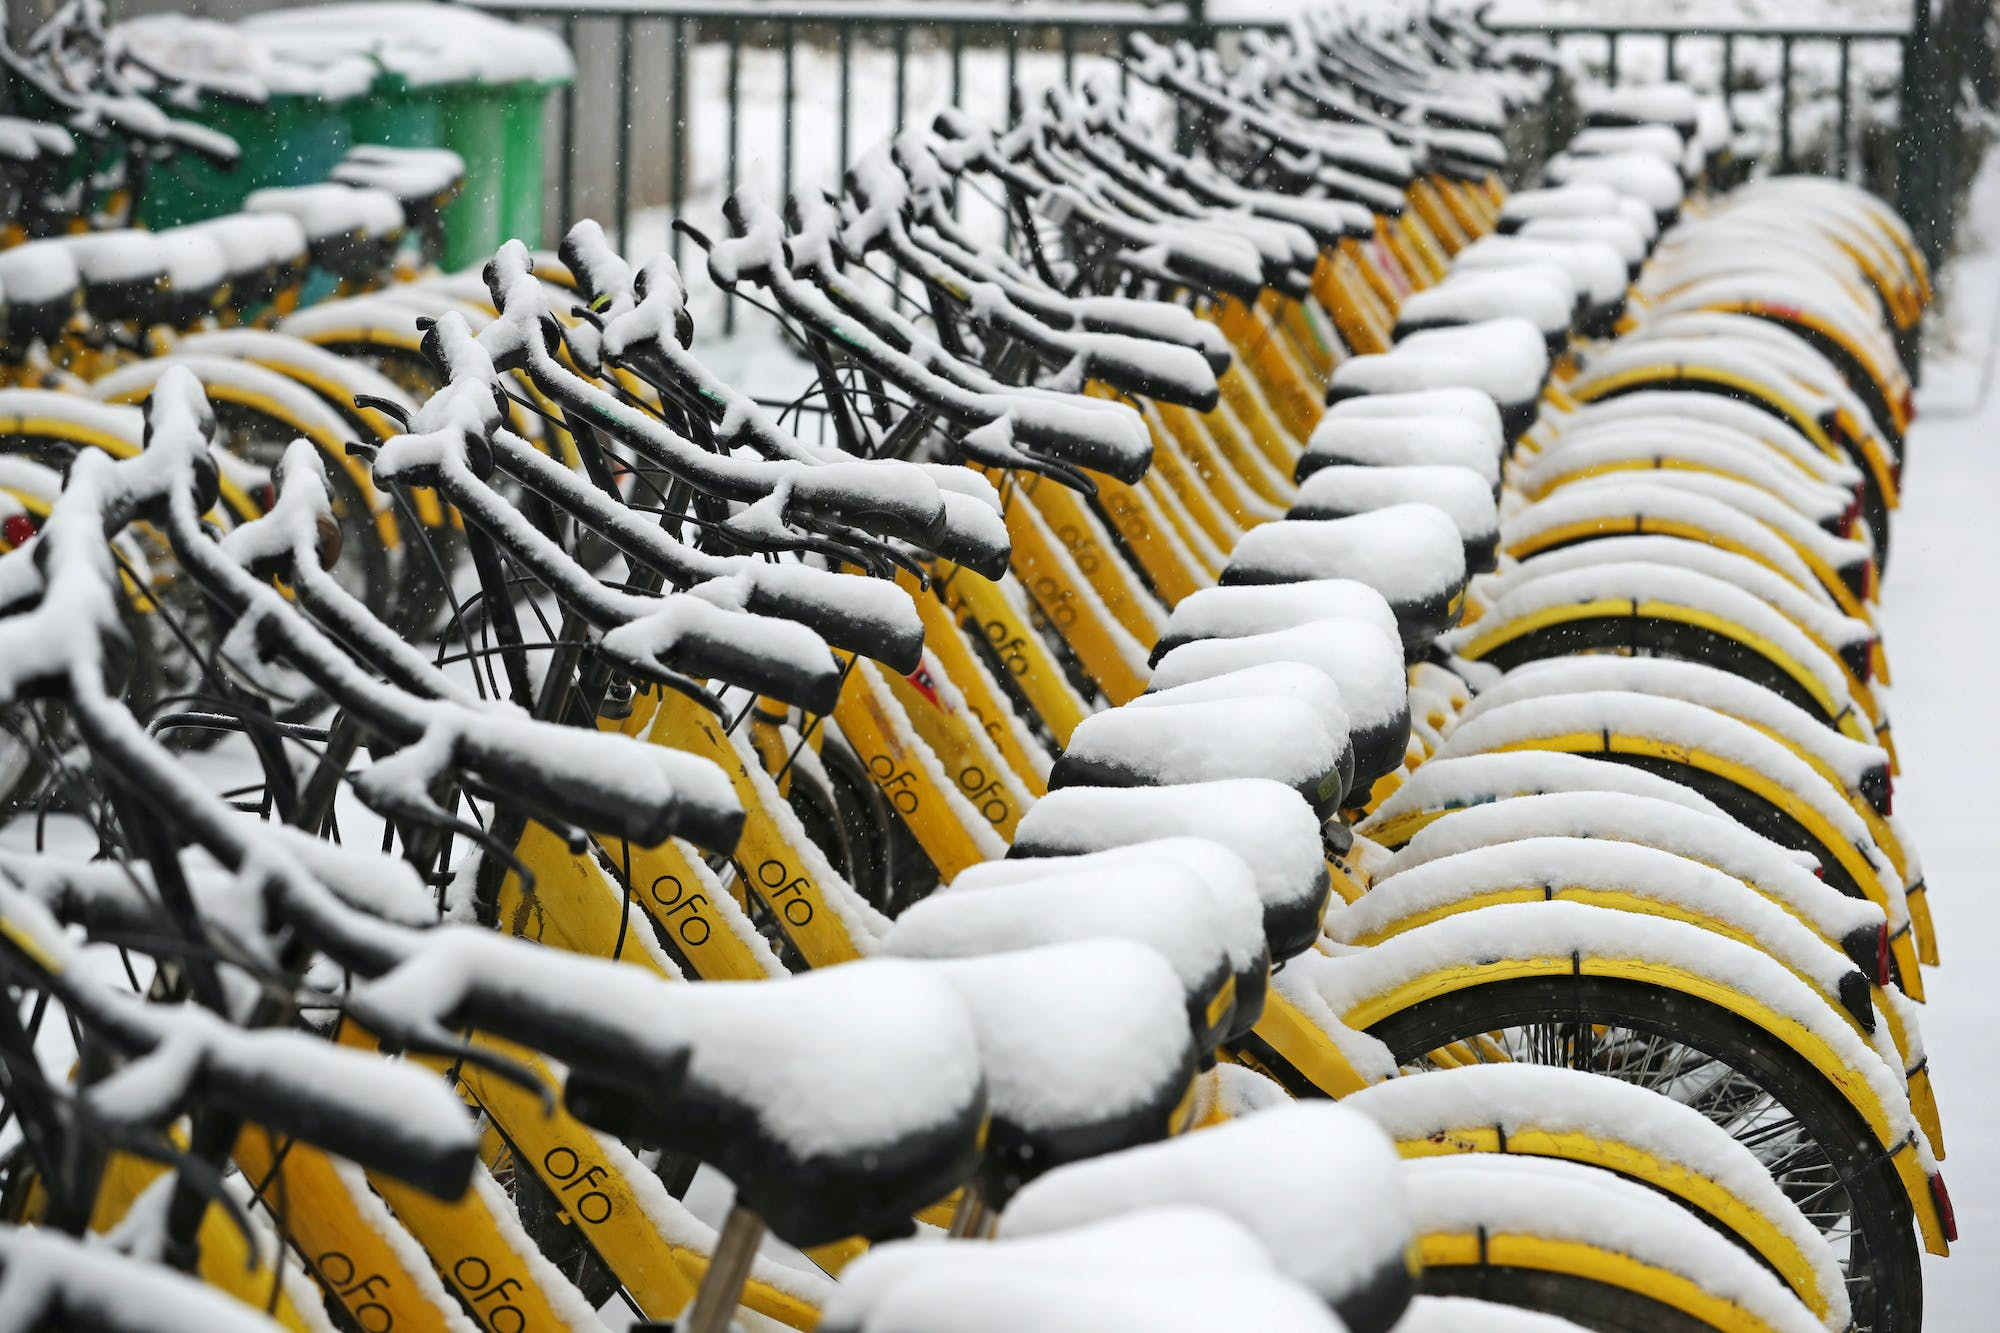 Ofo shared bicycles are seen covered with snow in Zhengzhou, Henan province, China January 4, 2018. REUTERS/Stringer ATTENTION EDITORS - THIS IMAGE WAS PROVIDED BY A THIRD PARTY. CHINA OUT. - RC16FEDC2590